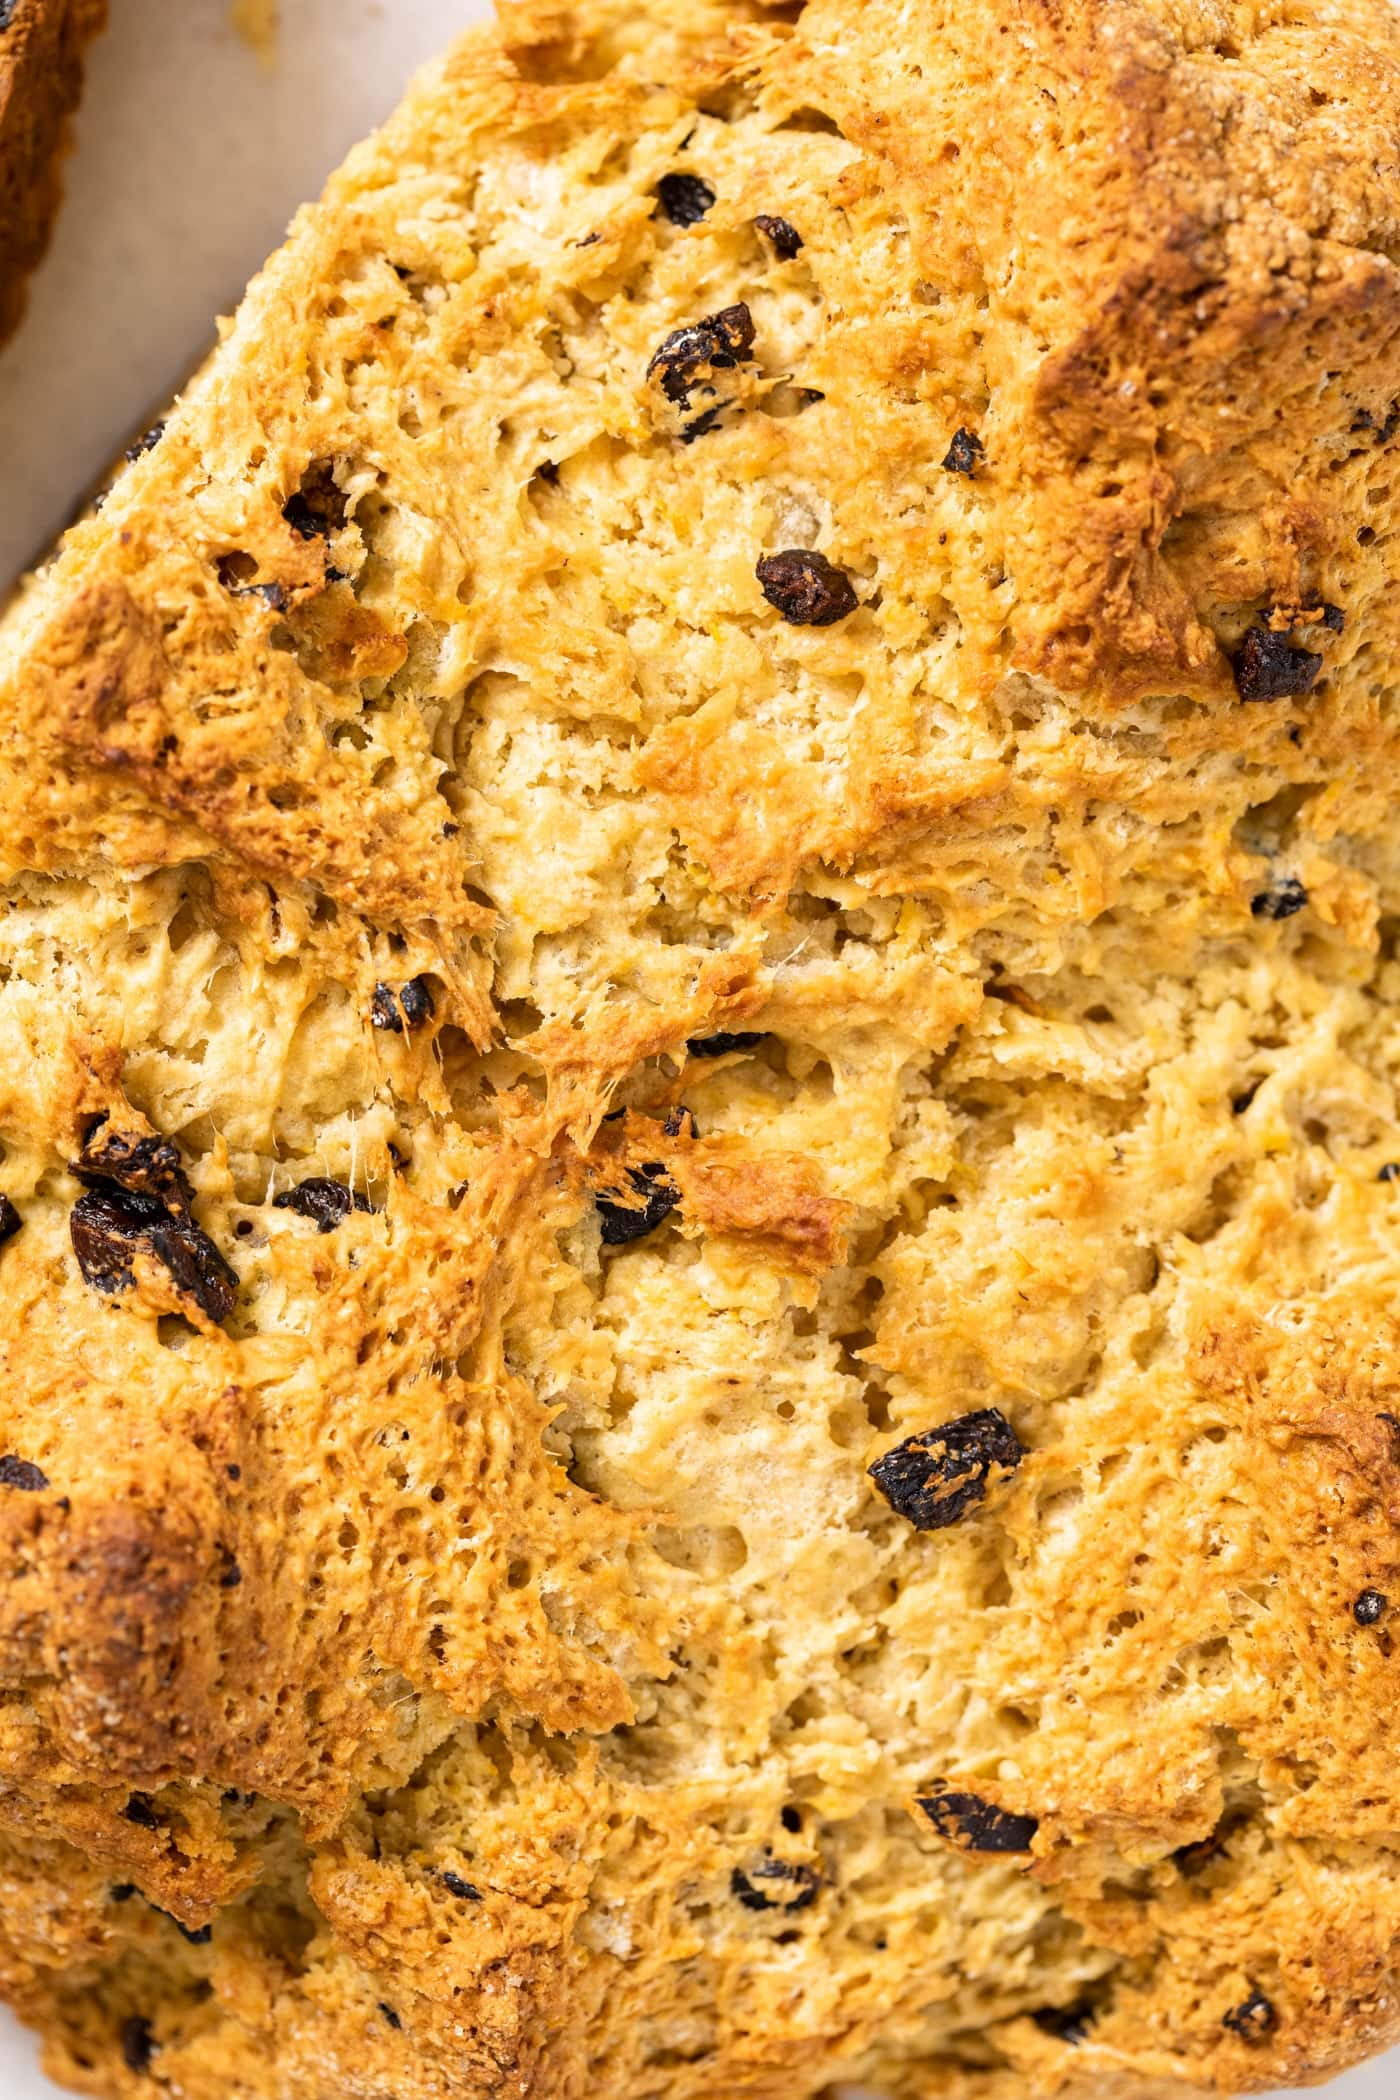 Top down view of top of Irish soda bread showing the golden texture of bread with peaks and valleys and craggy areas